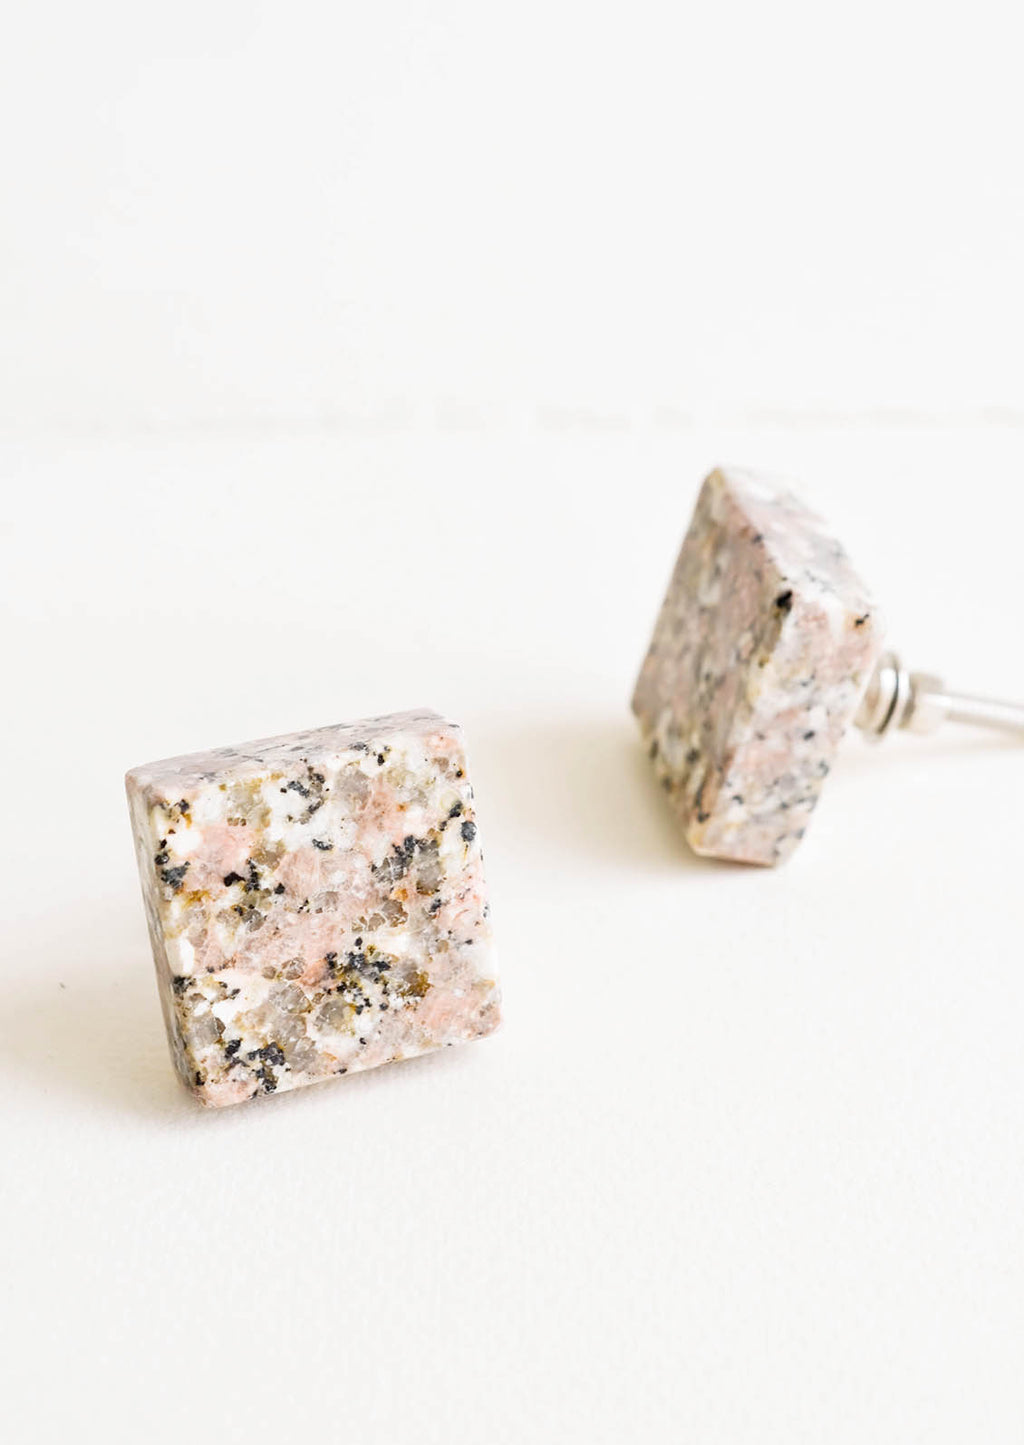 Pink Multi: Square stone knob with natural shades of pink, grey and white